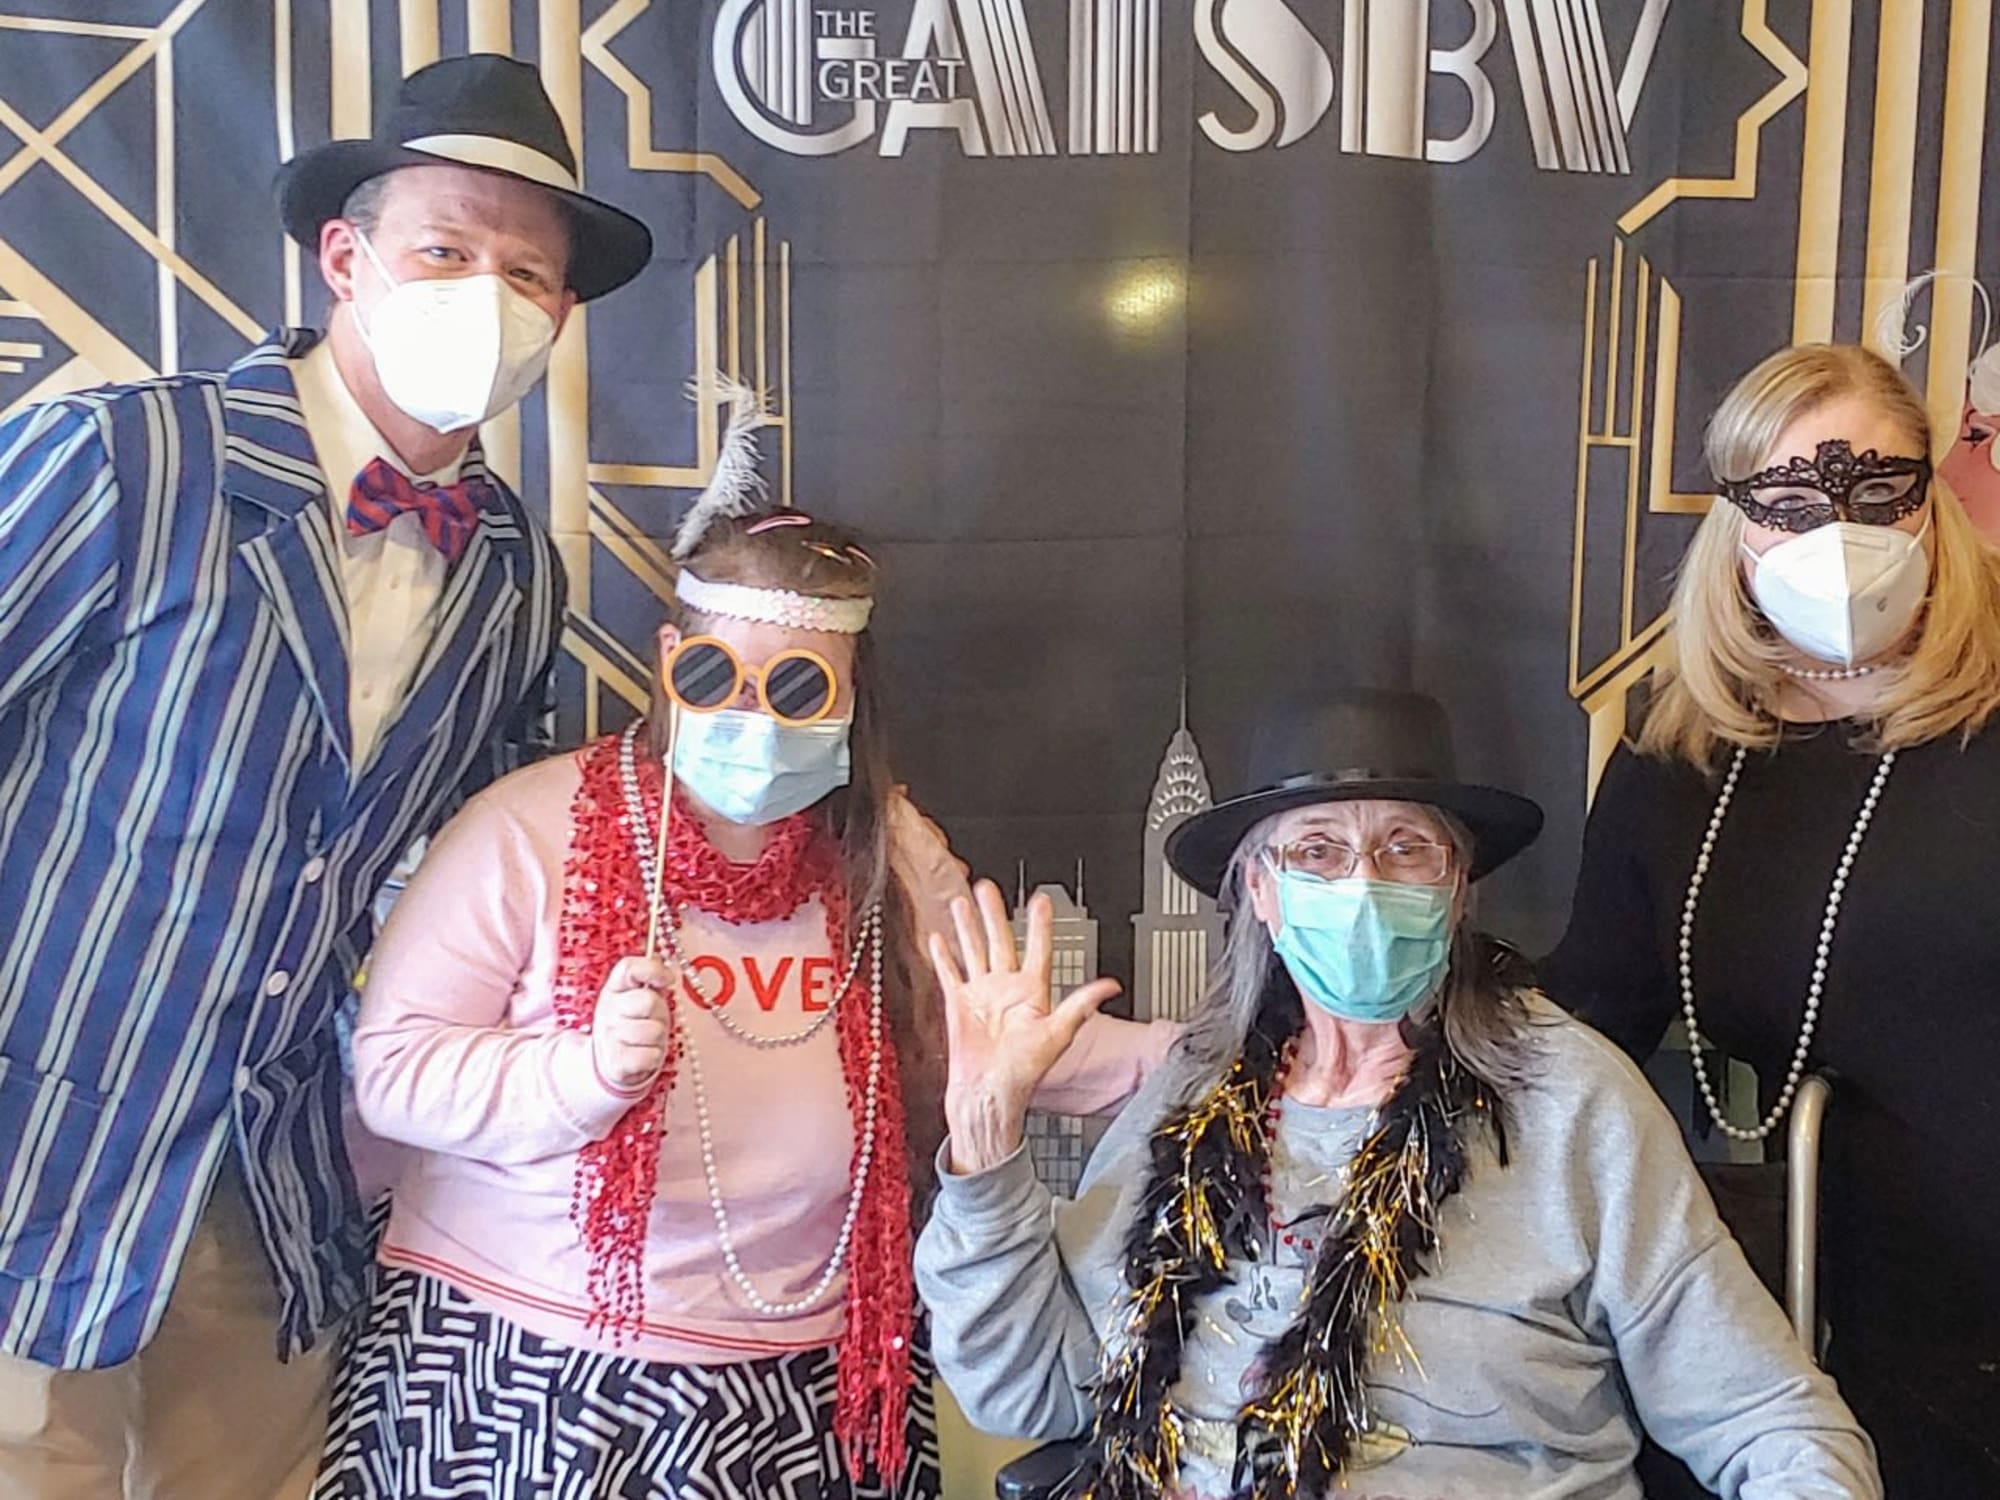 Great Gatsby party at The Wellington in Salt Lake City, Utah